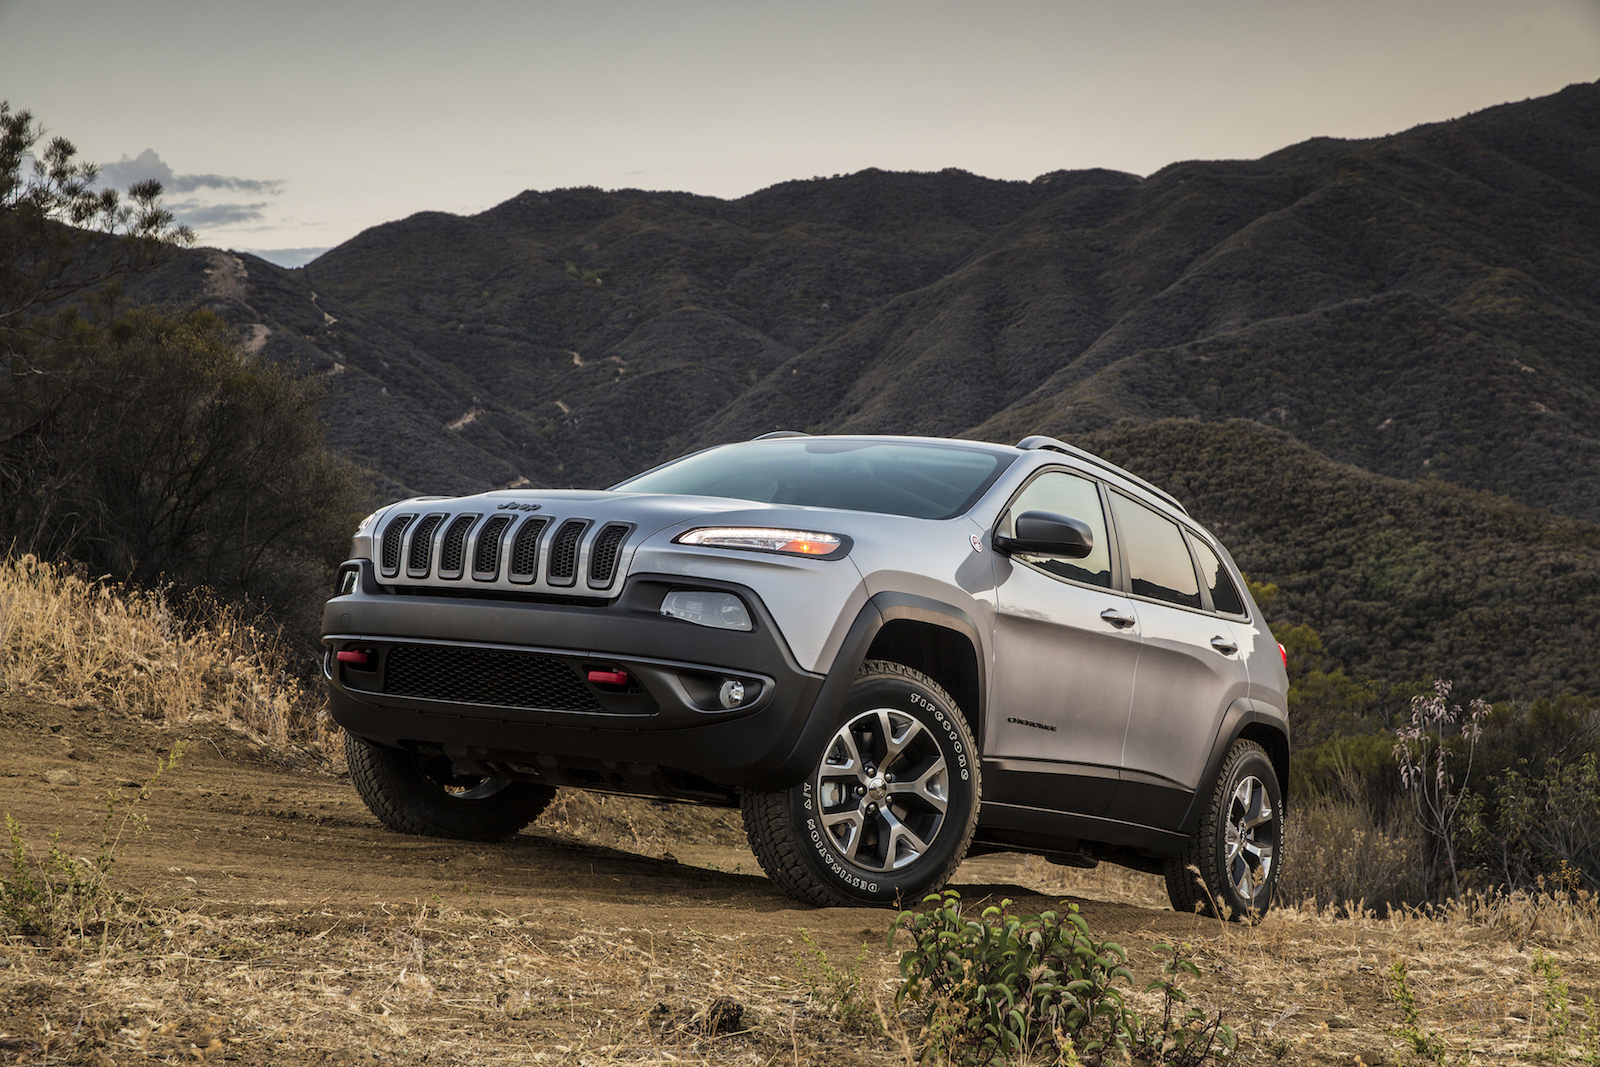 Jeep Cherokee Suv Recalled For